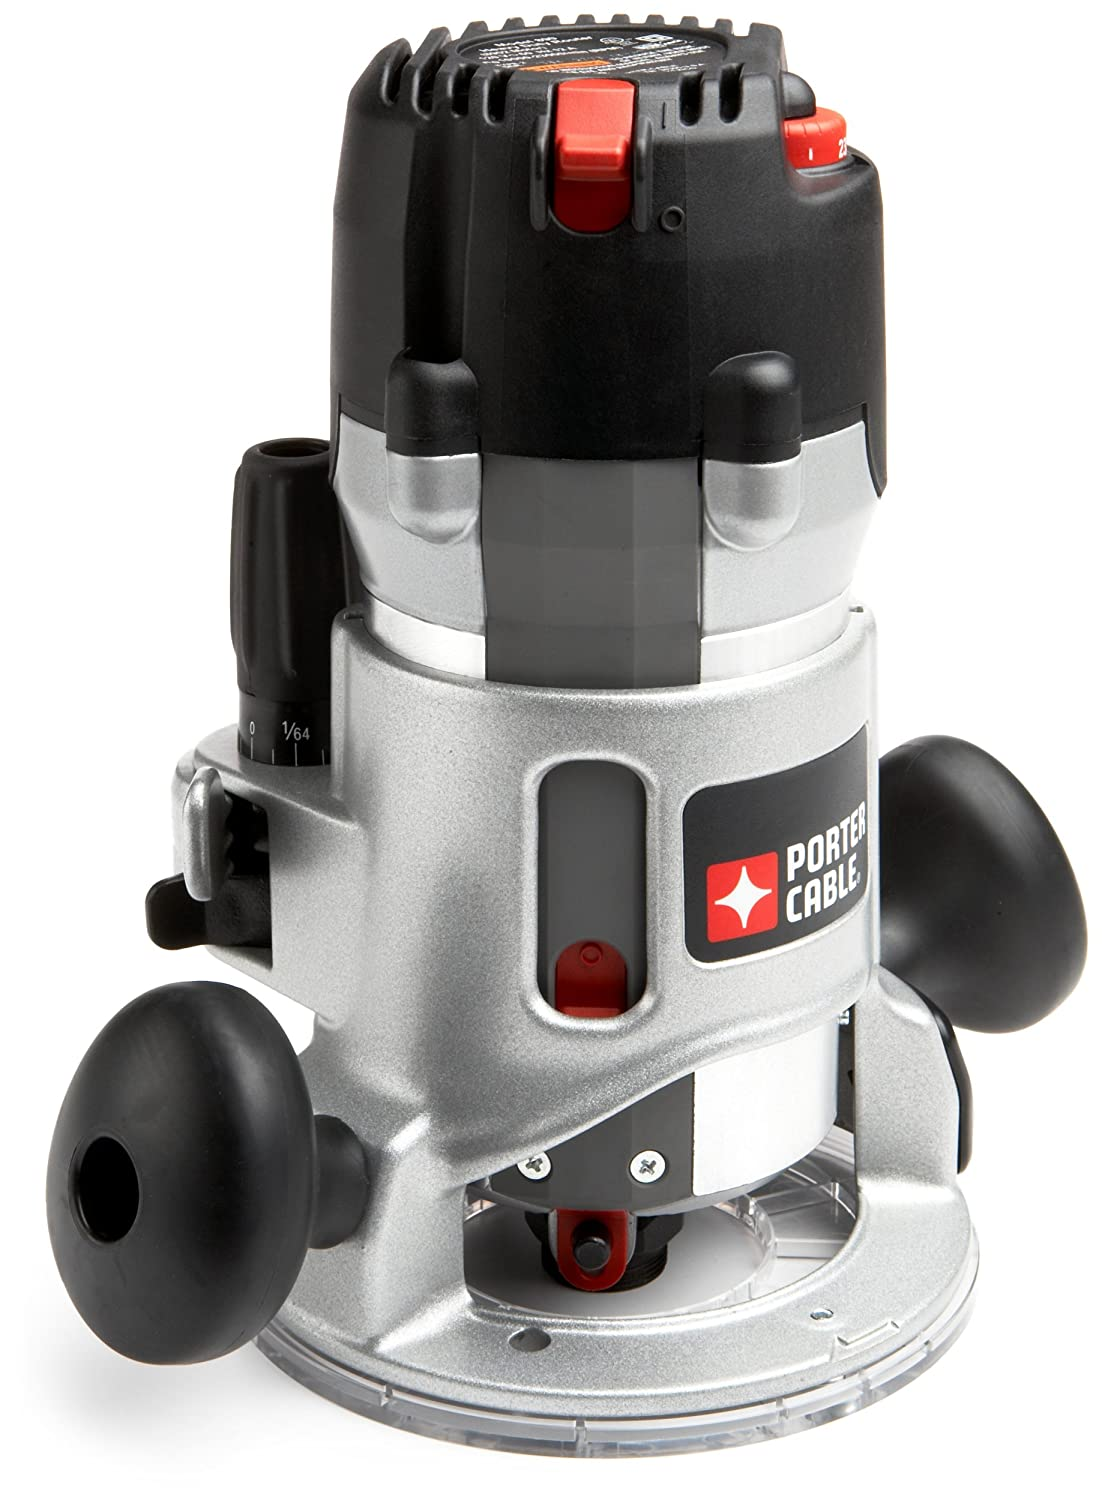 porter cable 892 2 1 4 horsepower router with height adjuster rh amazon com porter cable 890 owners manual Porter Cable 690 890